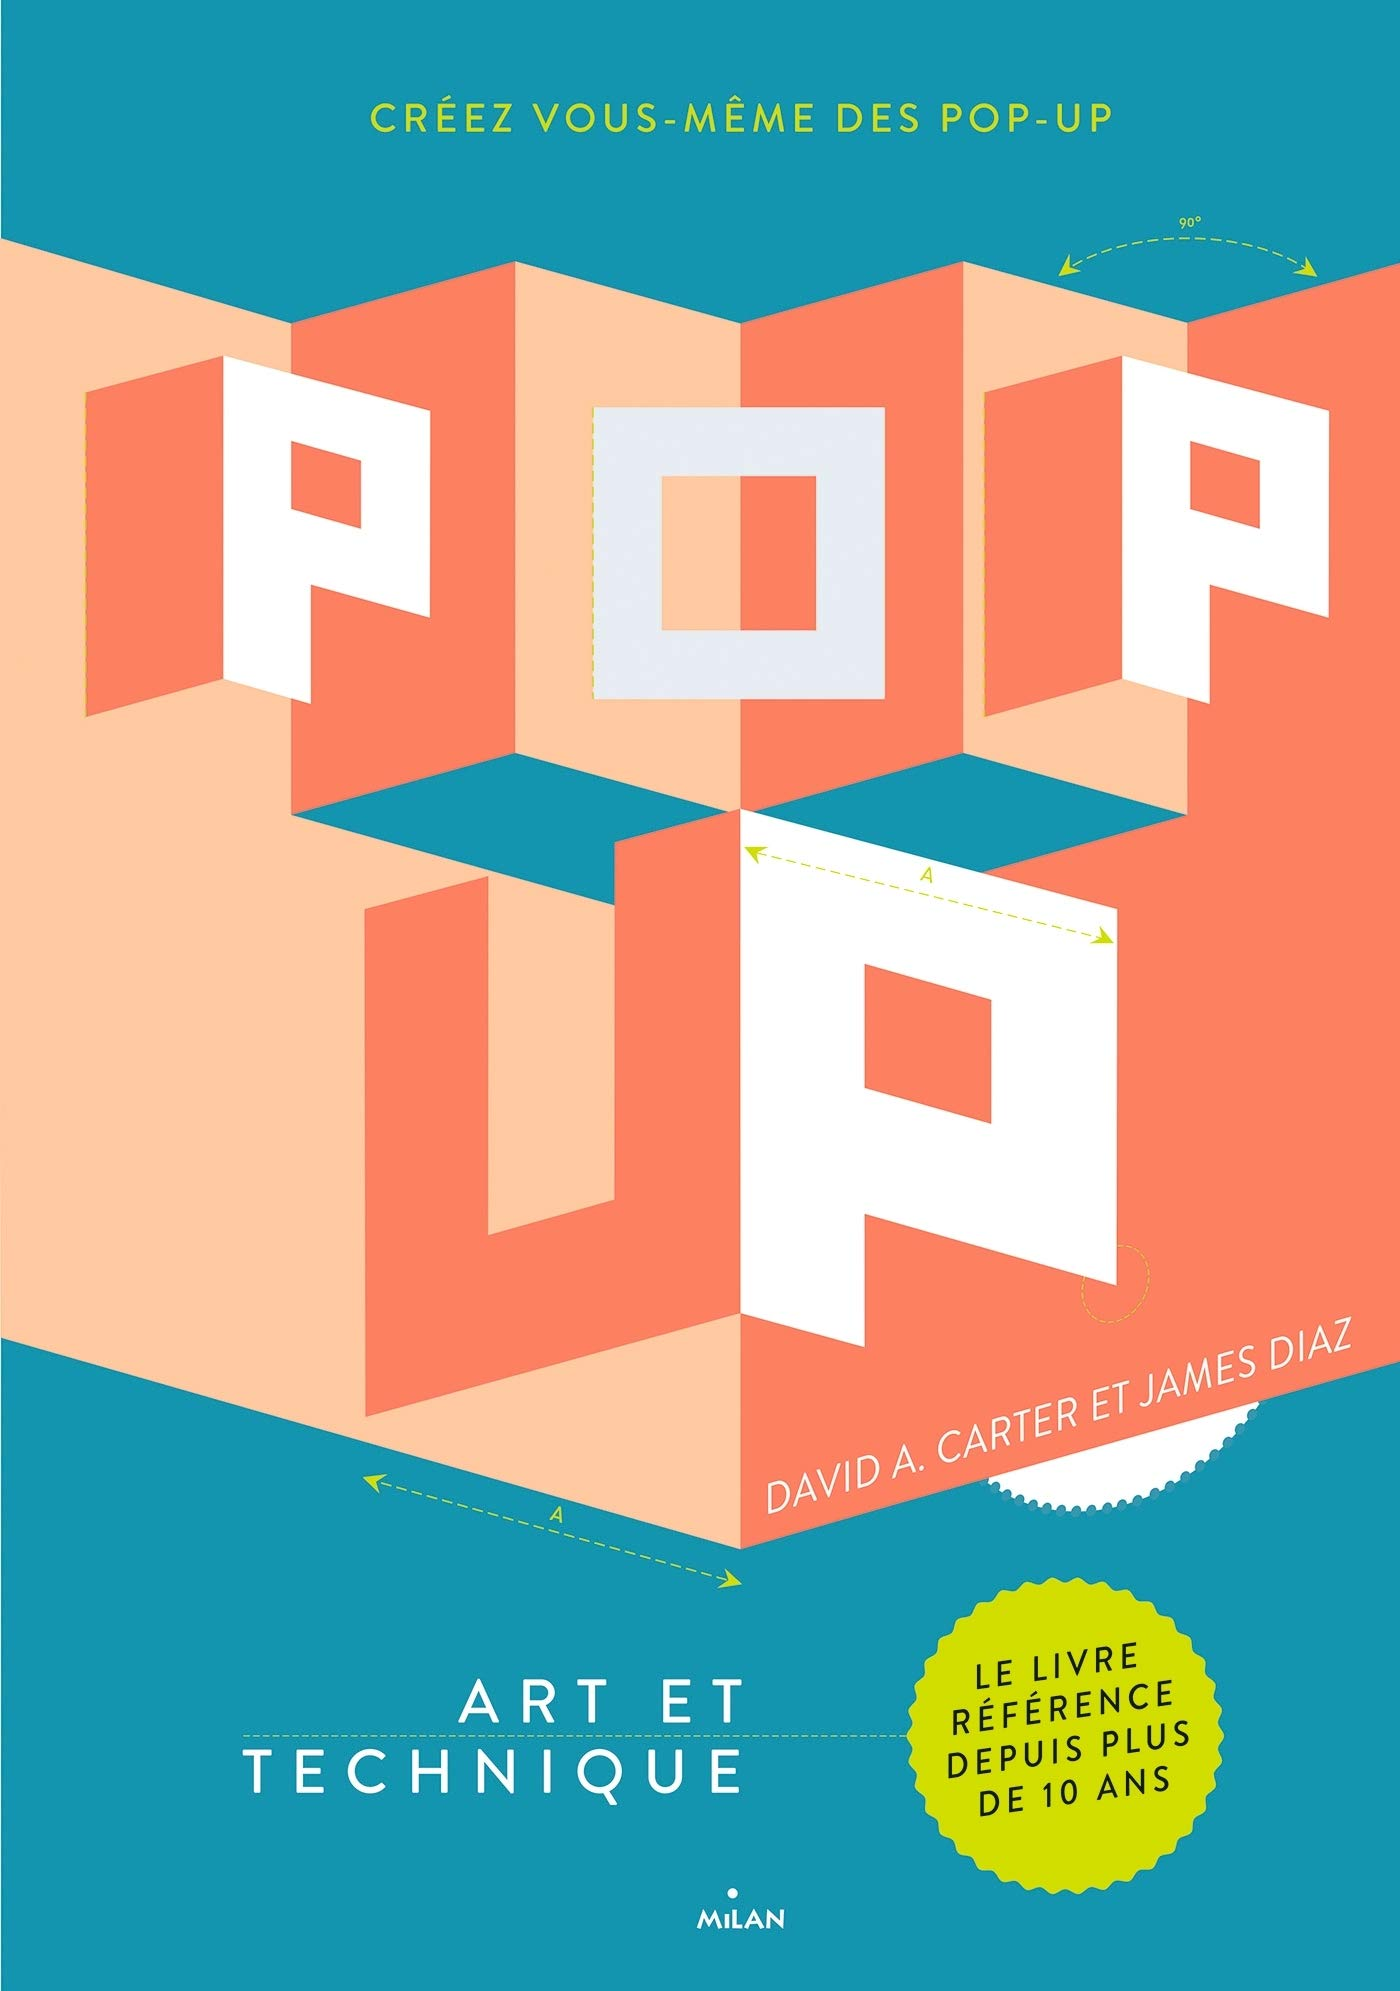 JAMES NEW HARDCOVER BOOK THE ELEMENTS OF POP-UP DAVID A.// DIAZ CARTER